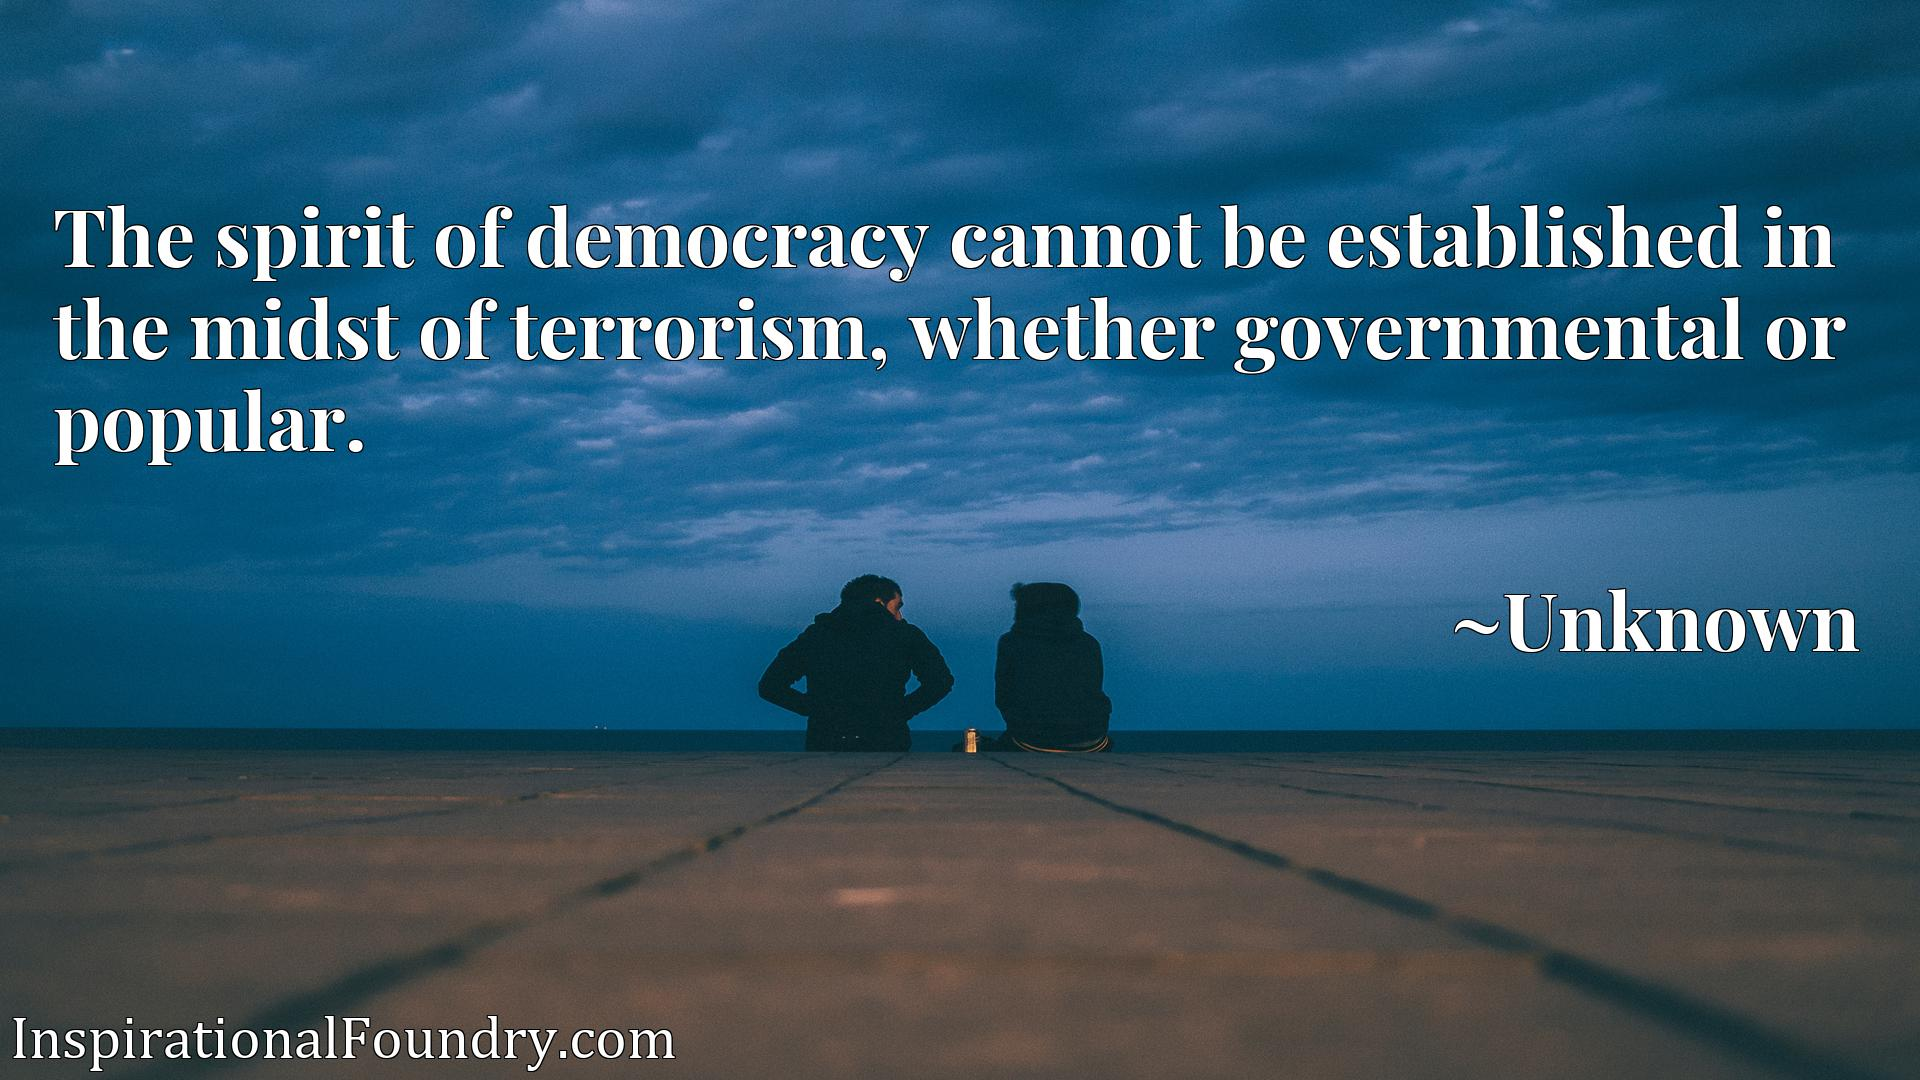 The spirit of democracy cannot be established in the midst of terrorism, whether governmental or popular.